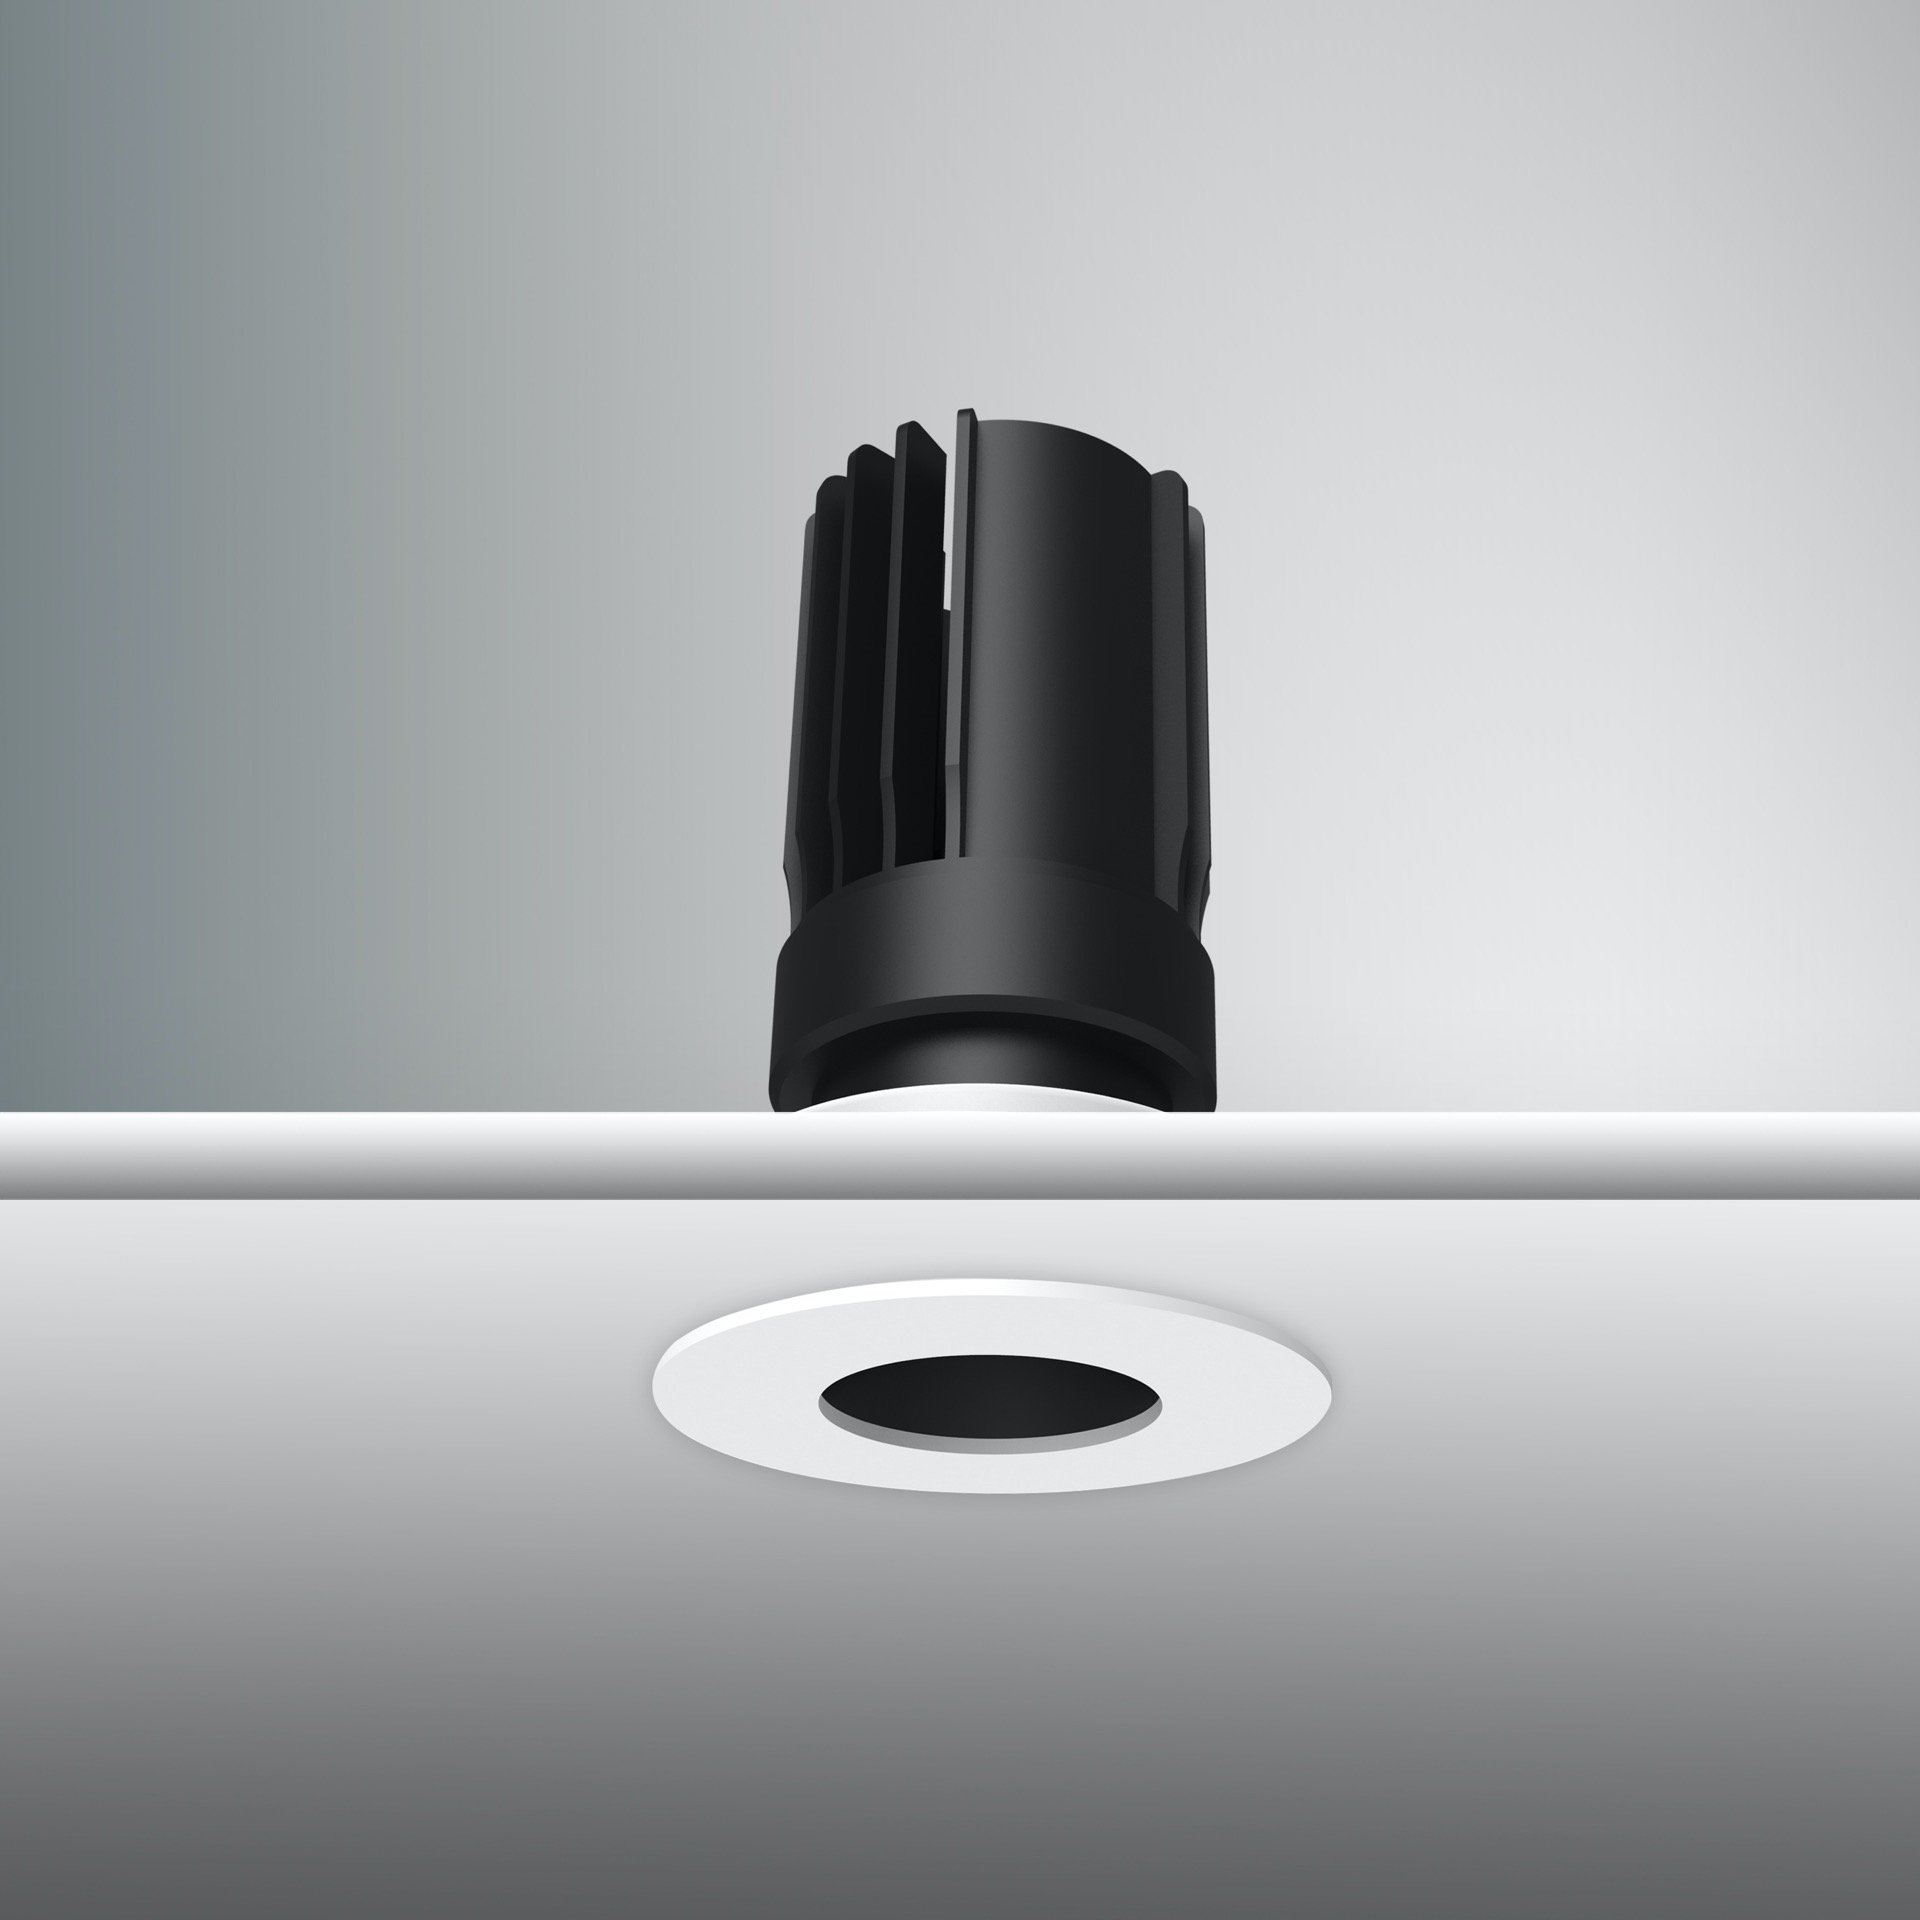 Artech Infra recessed architectural Fixed and Tilt LED downlight with ingress protection IP44.